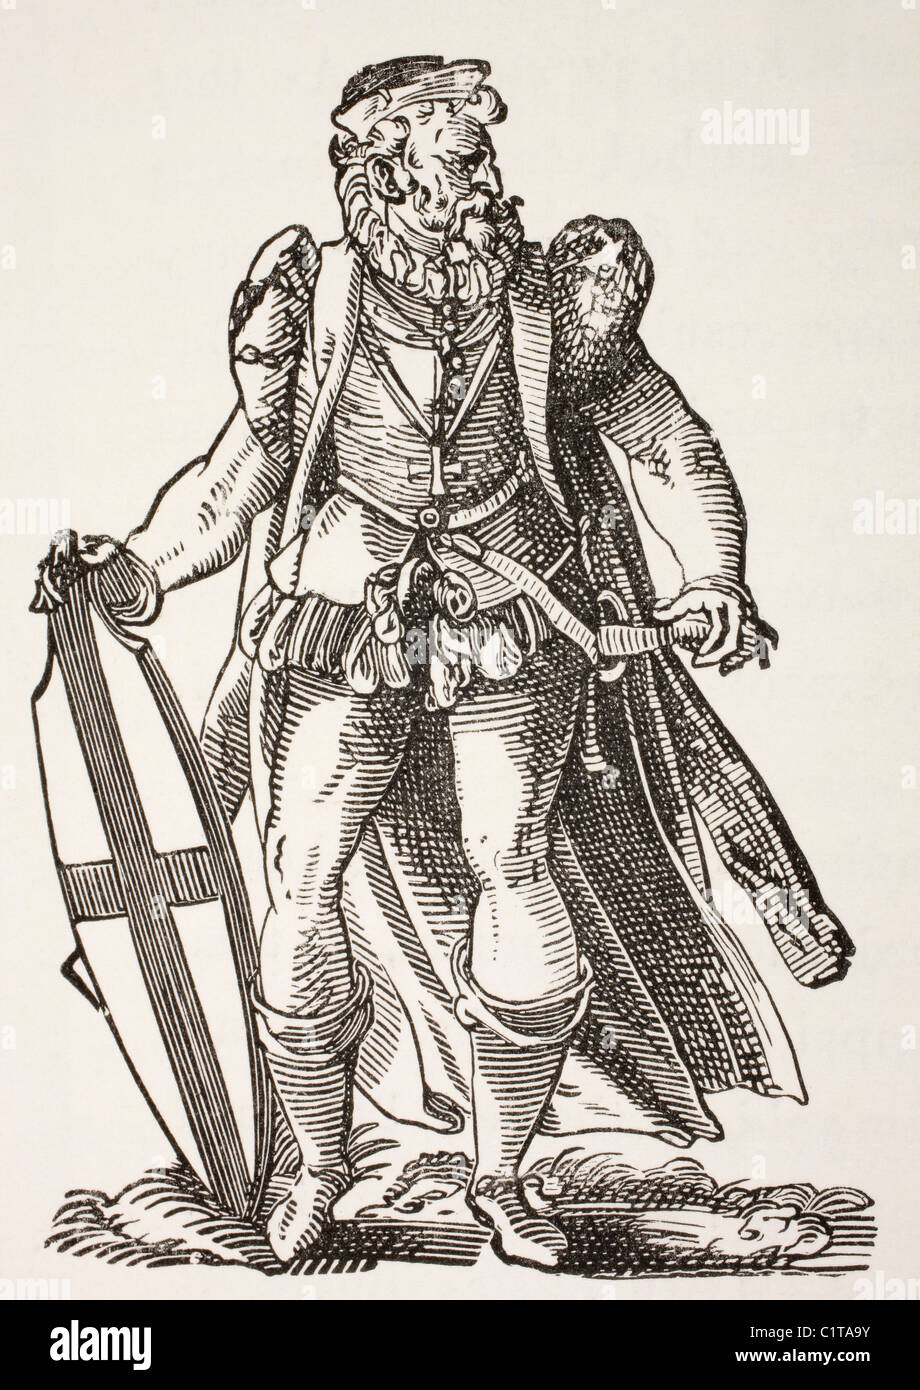 Teutonic knight. After a woodcut by Jost Amman published 1585. - Stock Image